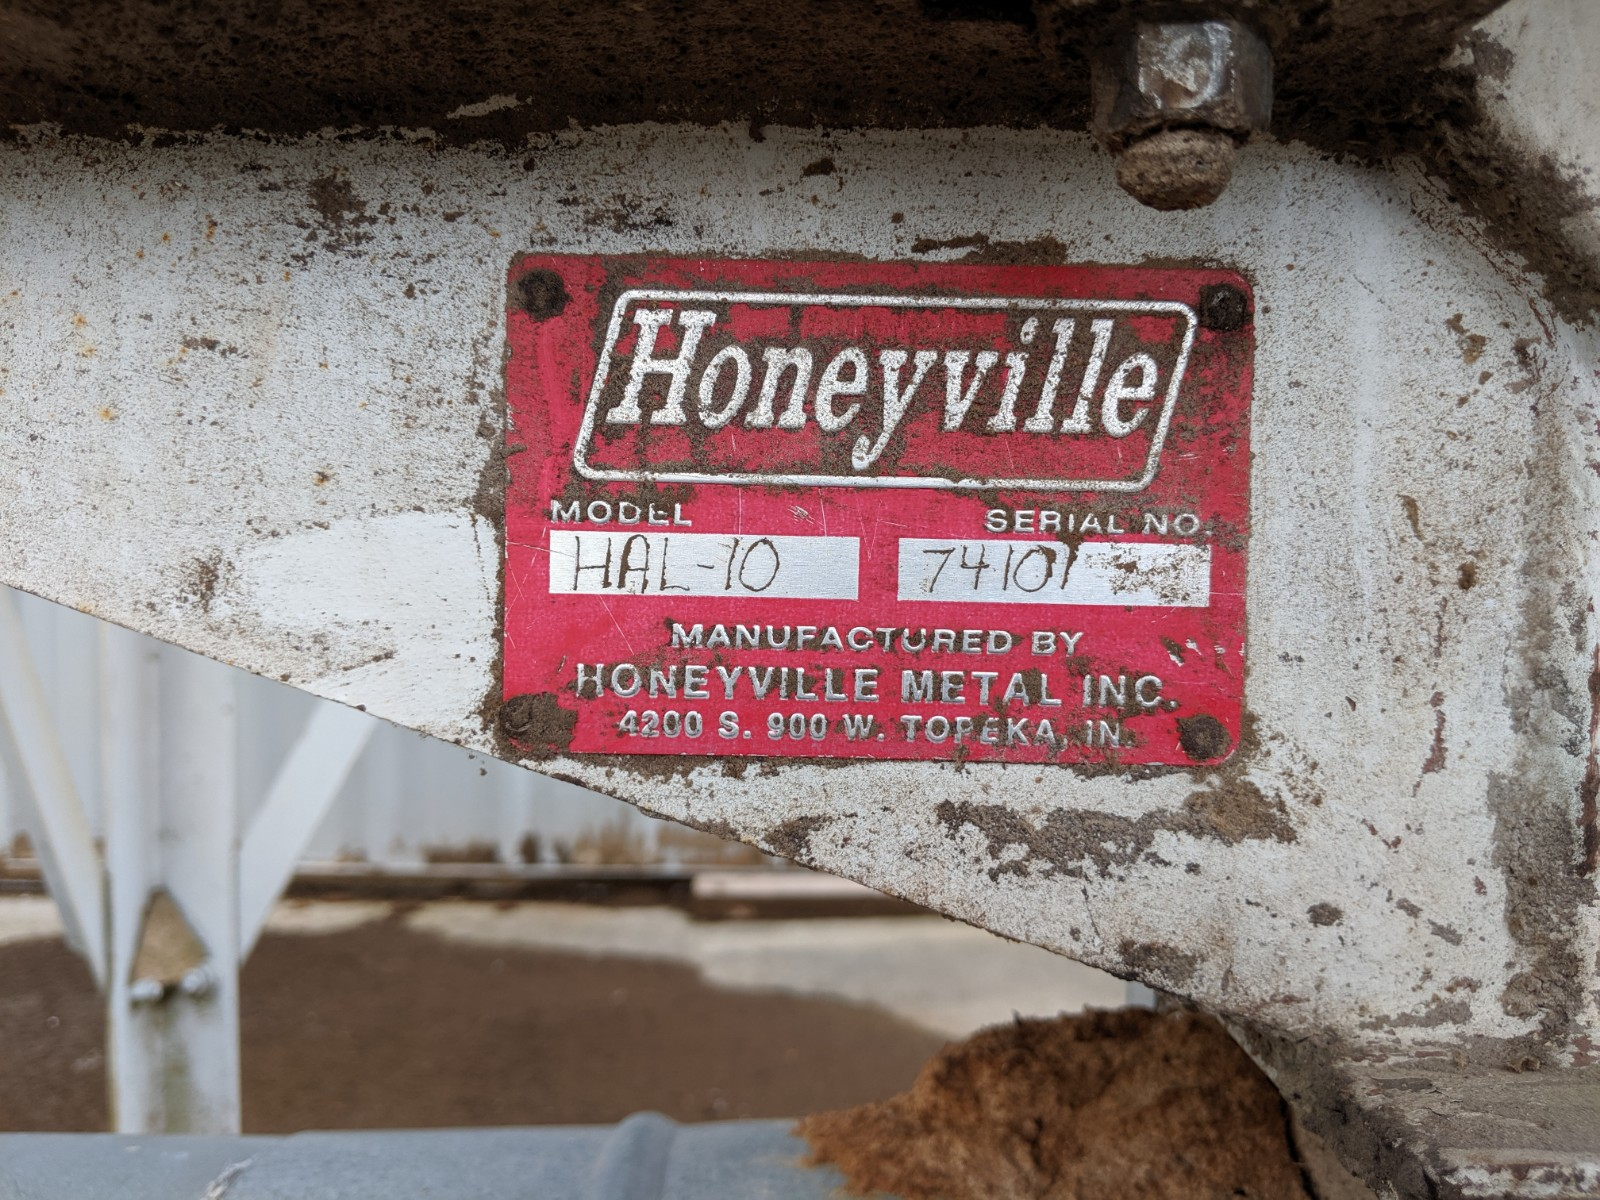 Lot 229 - Honeyville Dust Collection System